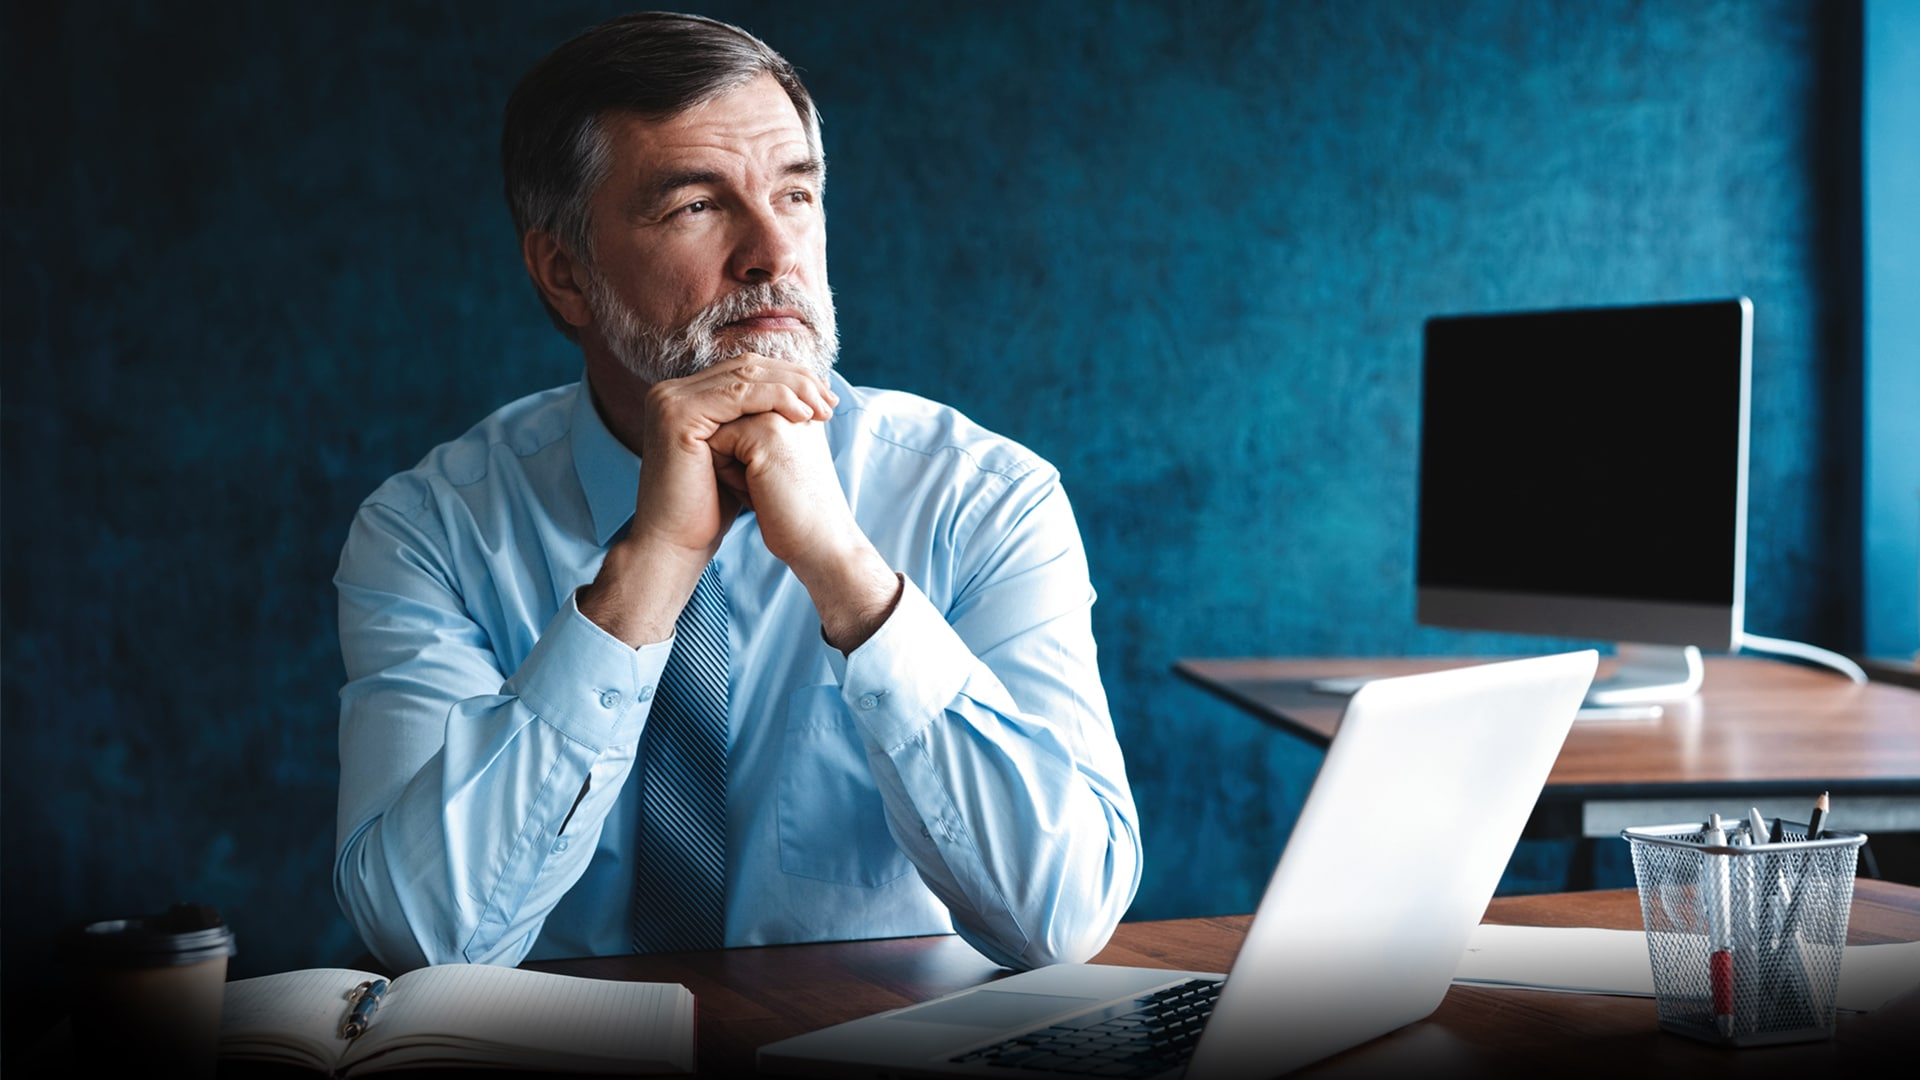 The age of no age: It's in the eye of the beholder Ethical Boardroom